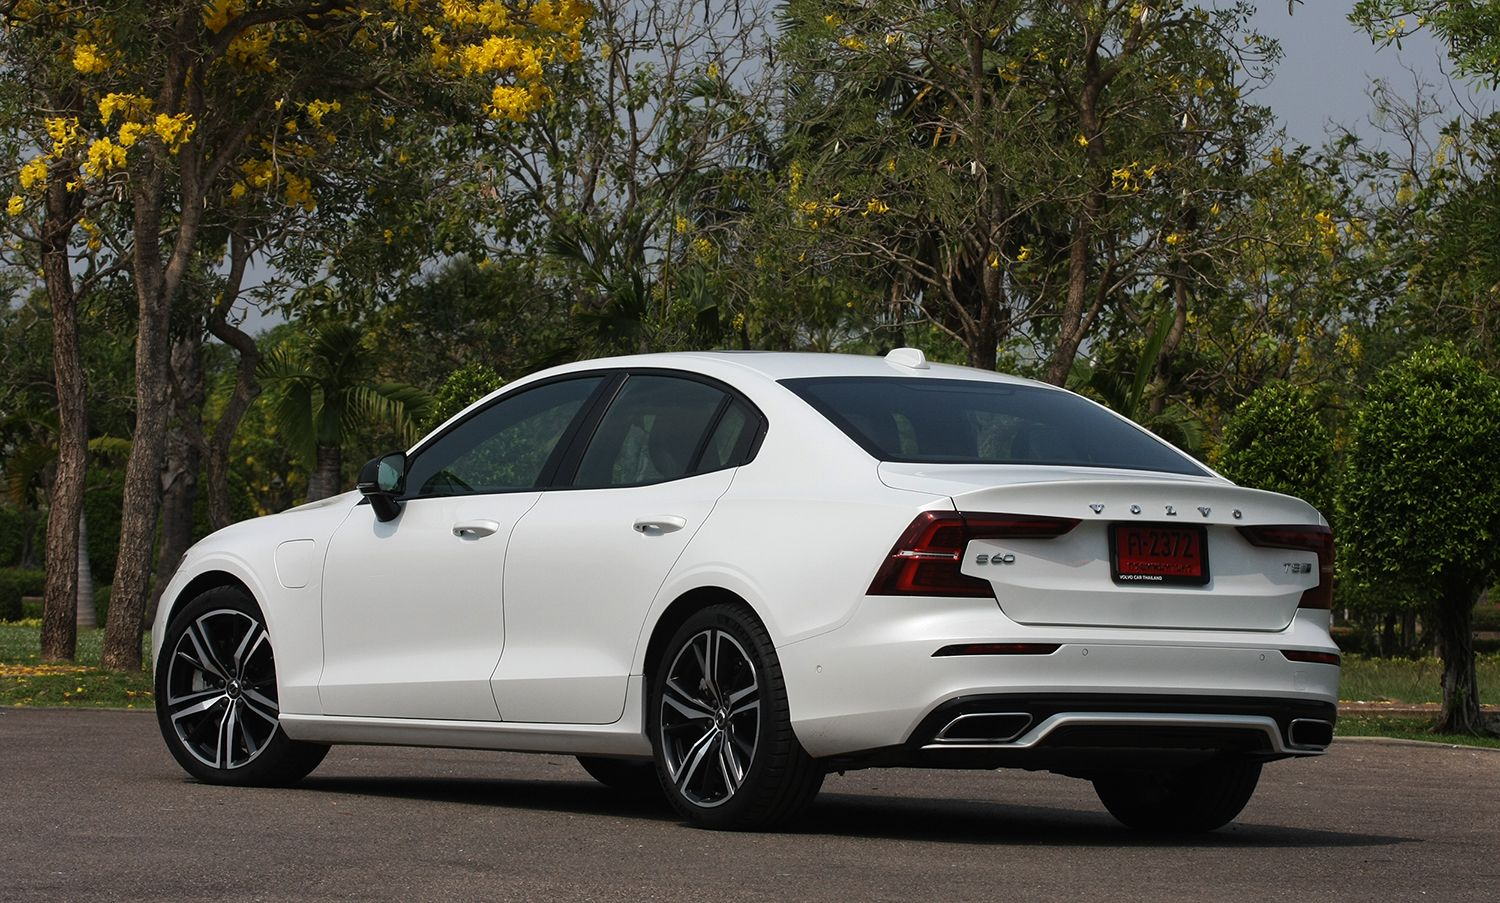 2020 Volvo S60 T8 Long Term Introduction Phev Specs Options In 2020 Volvo S60 Volvo Sports Sedan